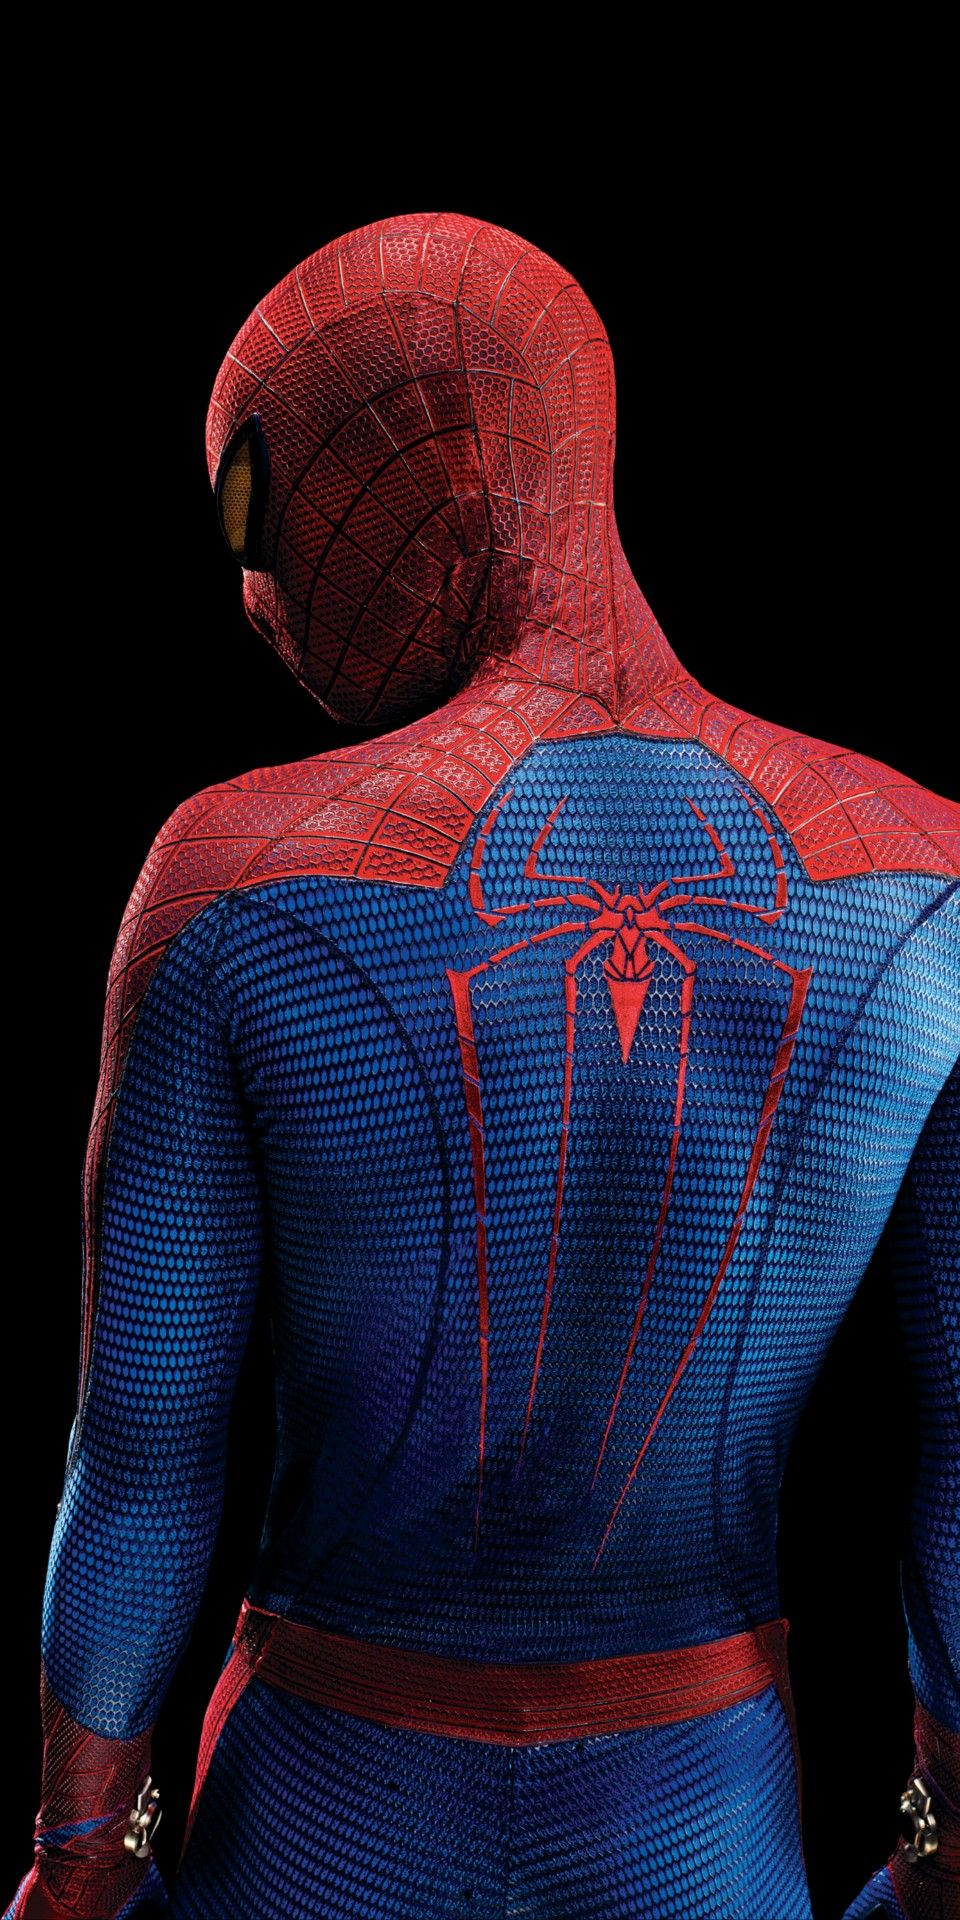 Pin By Mike Manna On Geek Pinterest Spiderman Amazing Spider And Marvel Universe